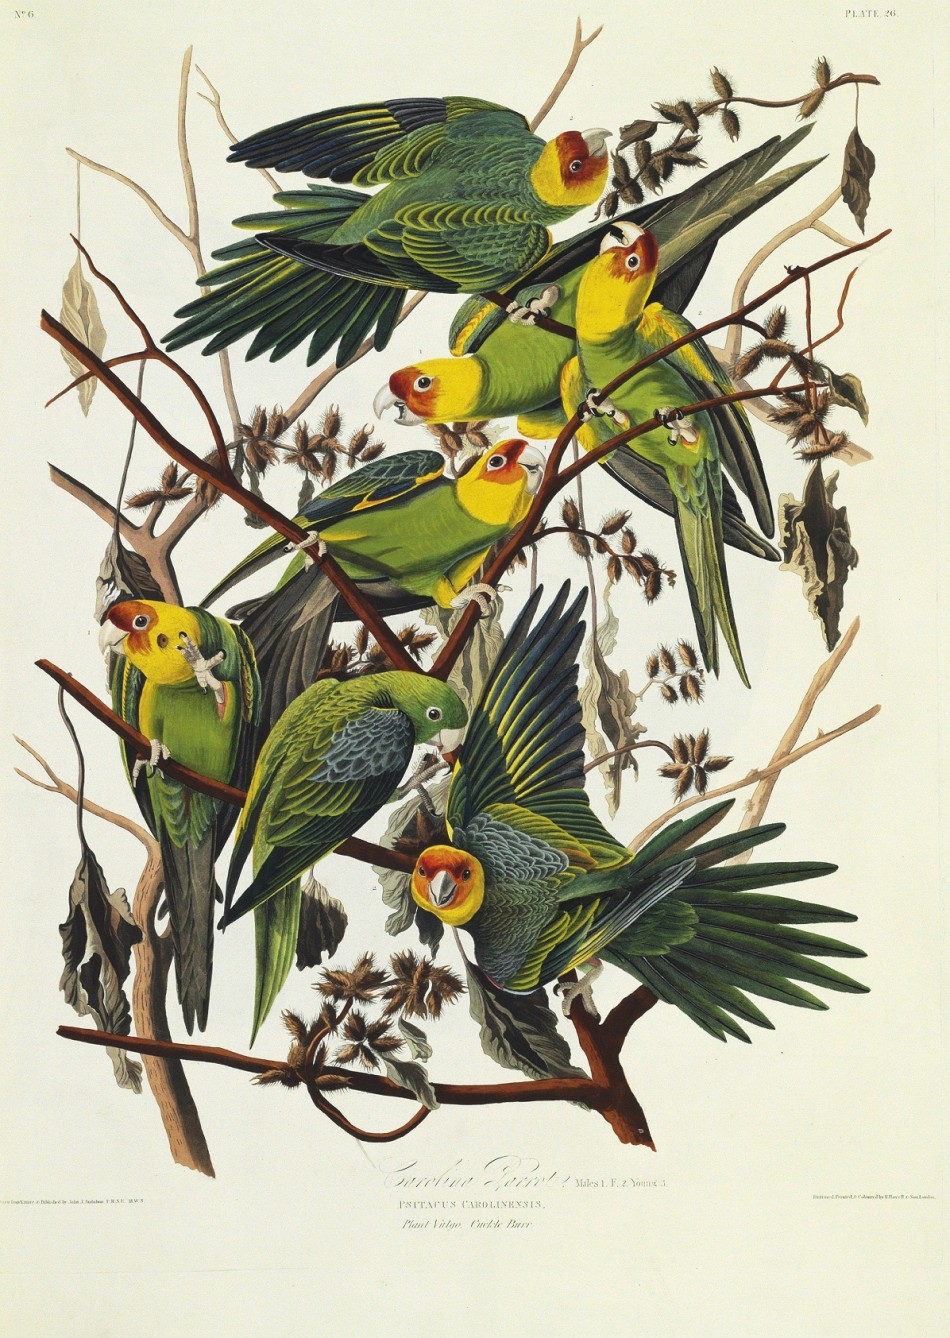 A rare first edition of John James Audobon's 'The Birds Of America' (1827-1838) will be auctioned at Christie's in New York